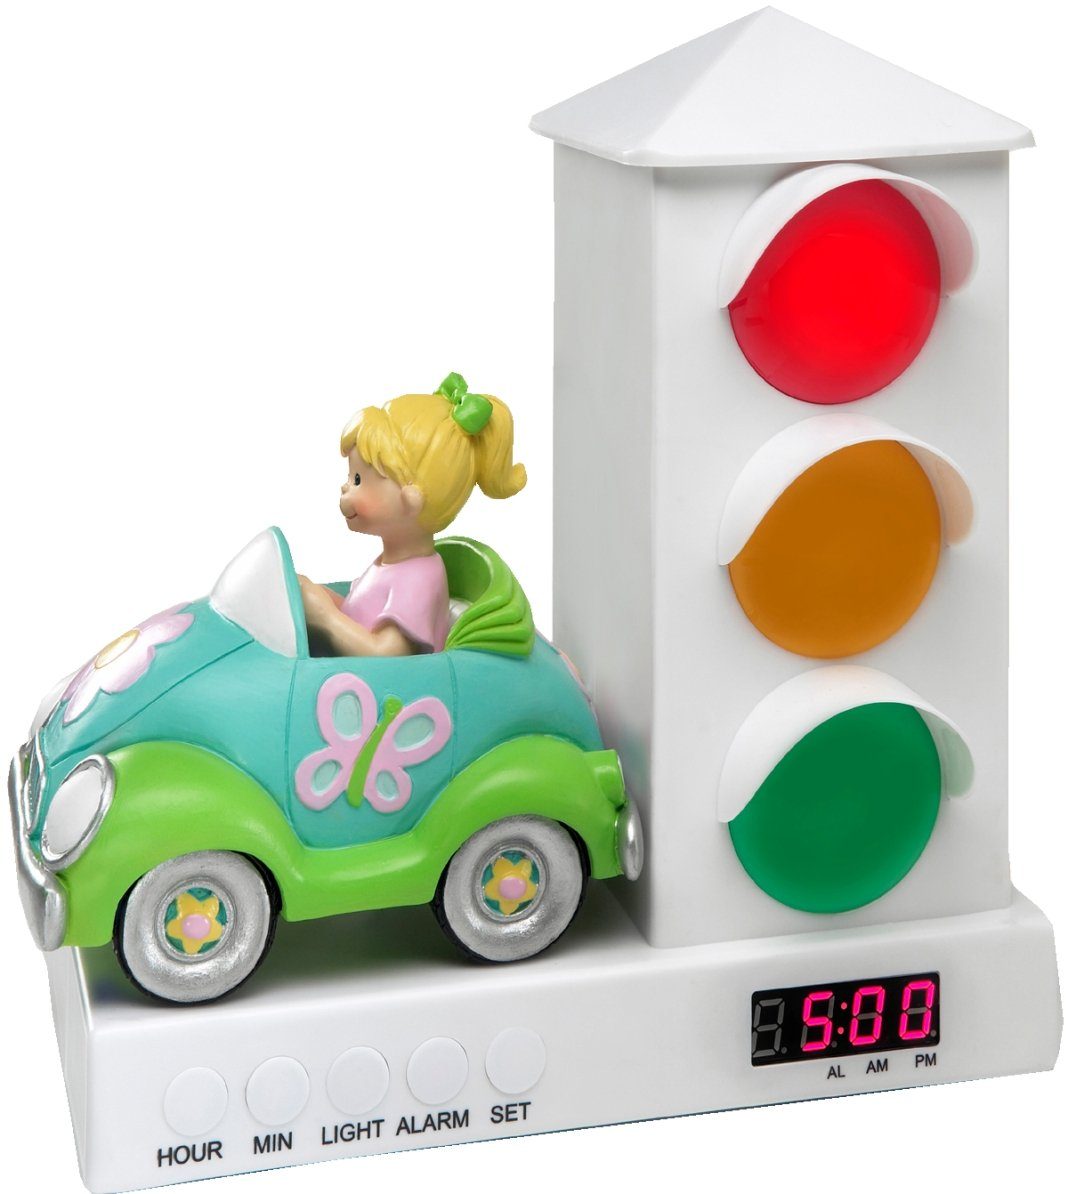 Its About Time Stoplight Sleep Enhancing Alarm Clock Wiring Besides Traffic Signal Light On Old For Kids Purple Pink Owls Home Kitchen